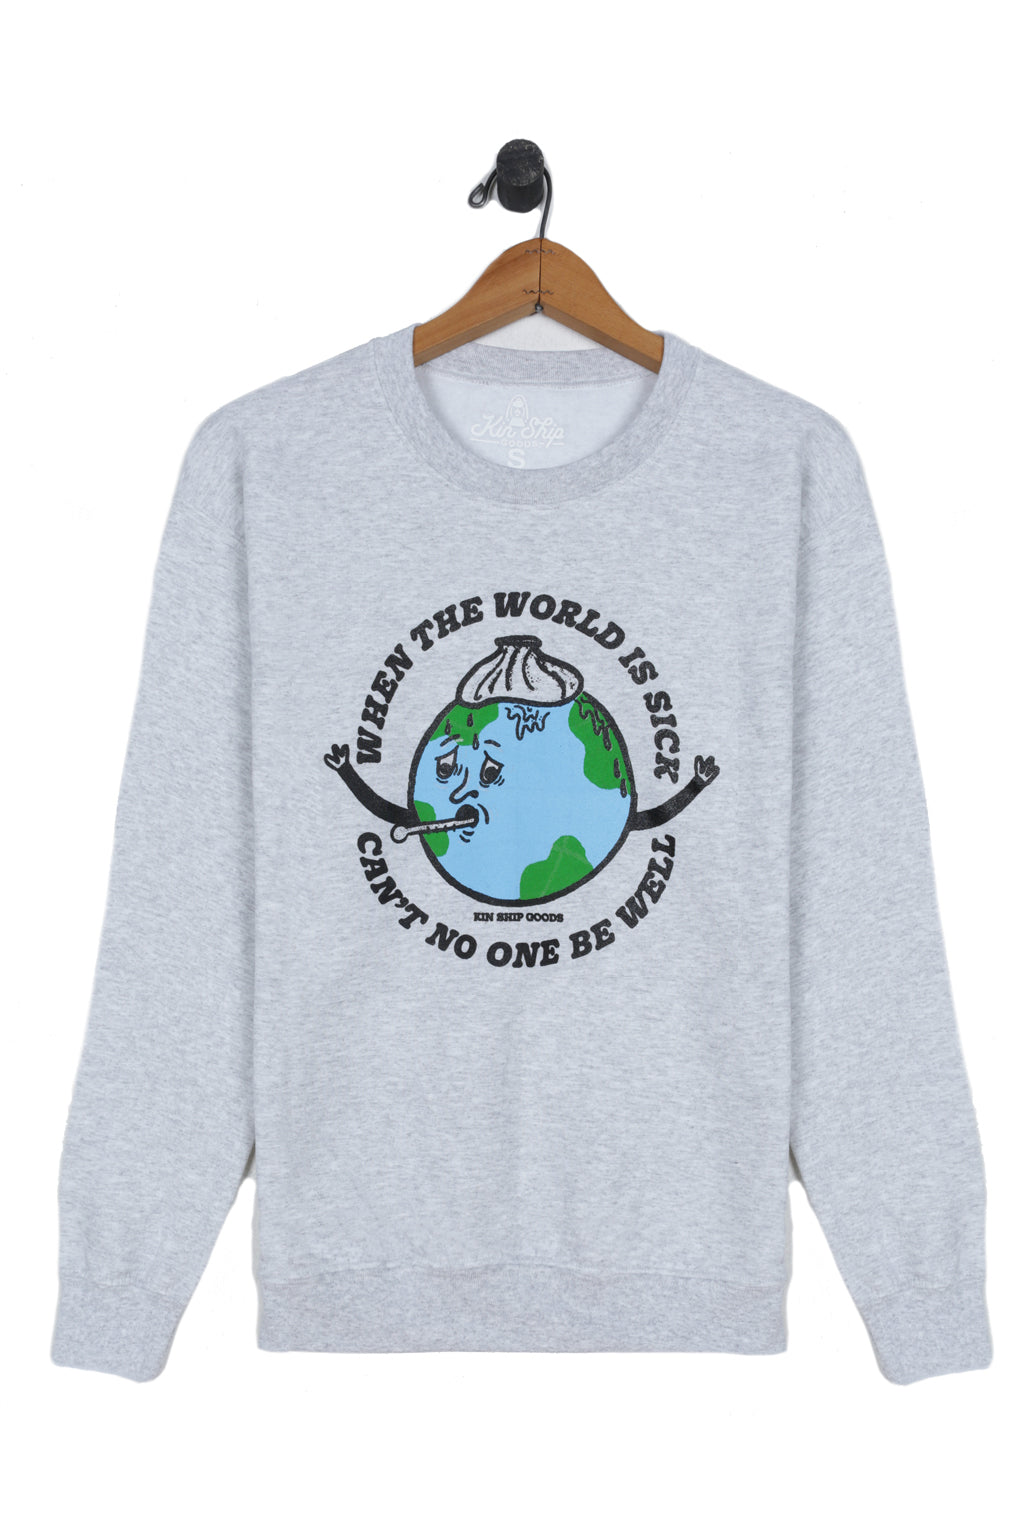 be well sweatshirt, final sale